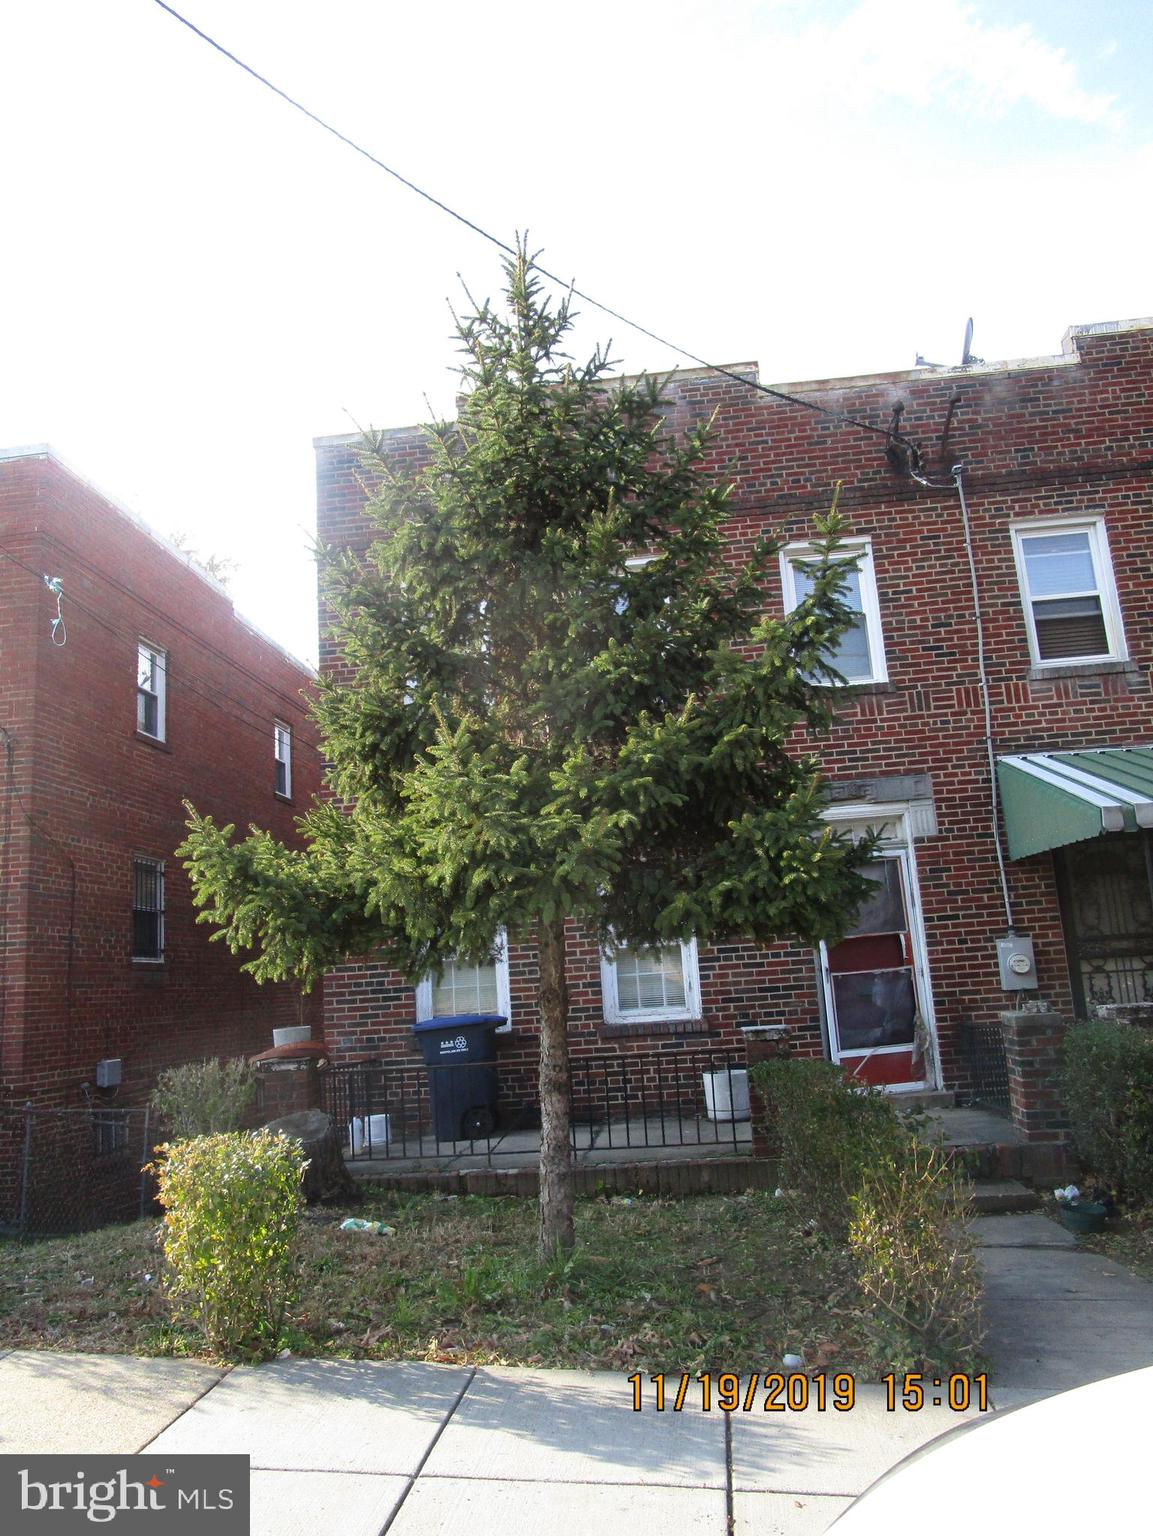 PROPERTY IS A REHAB.  EVERYTHING NEEDS TO BE REPLACED.  SELLER  IS LOOKIN FOR  CASH OFFERS - NOT HAR